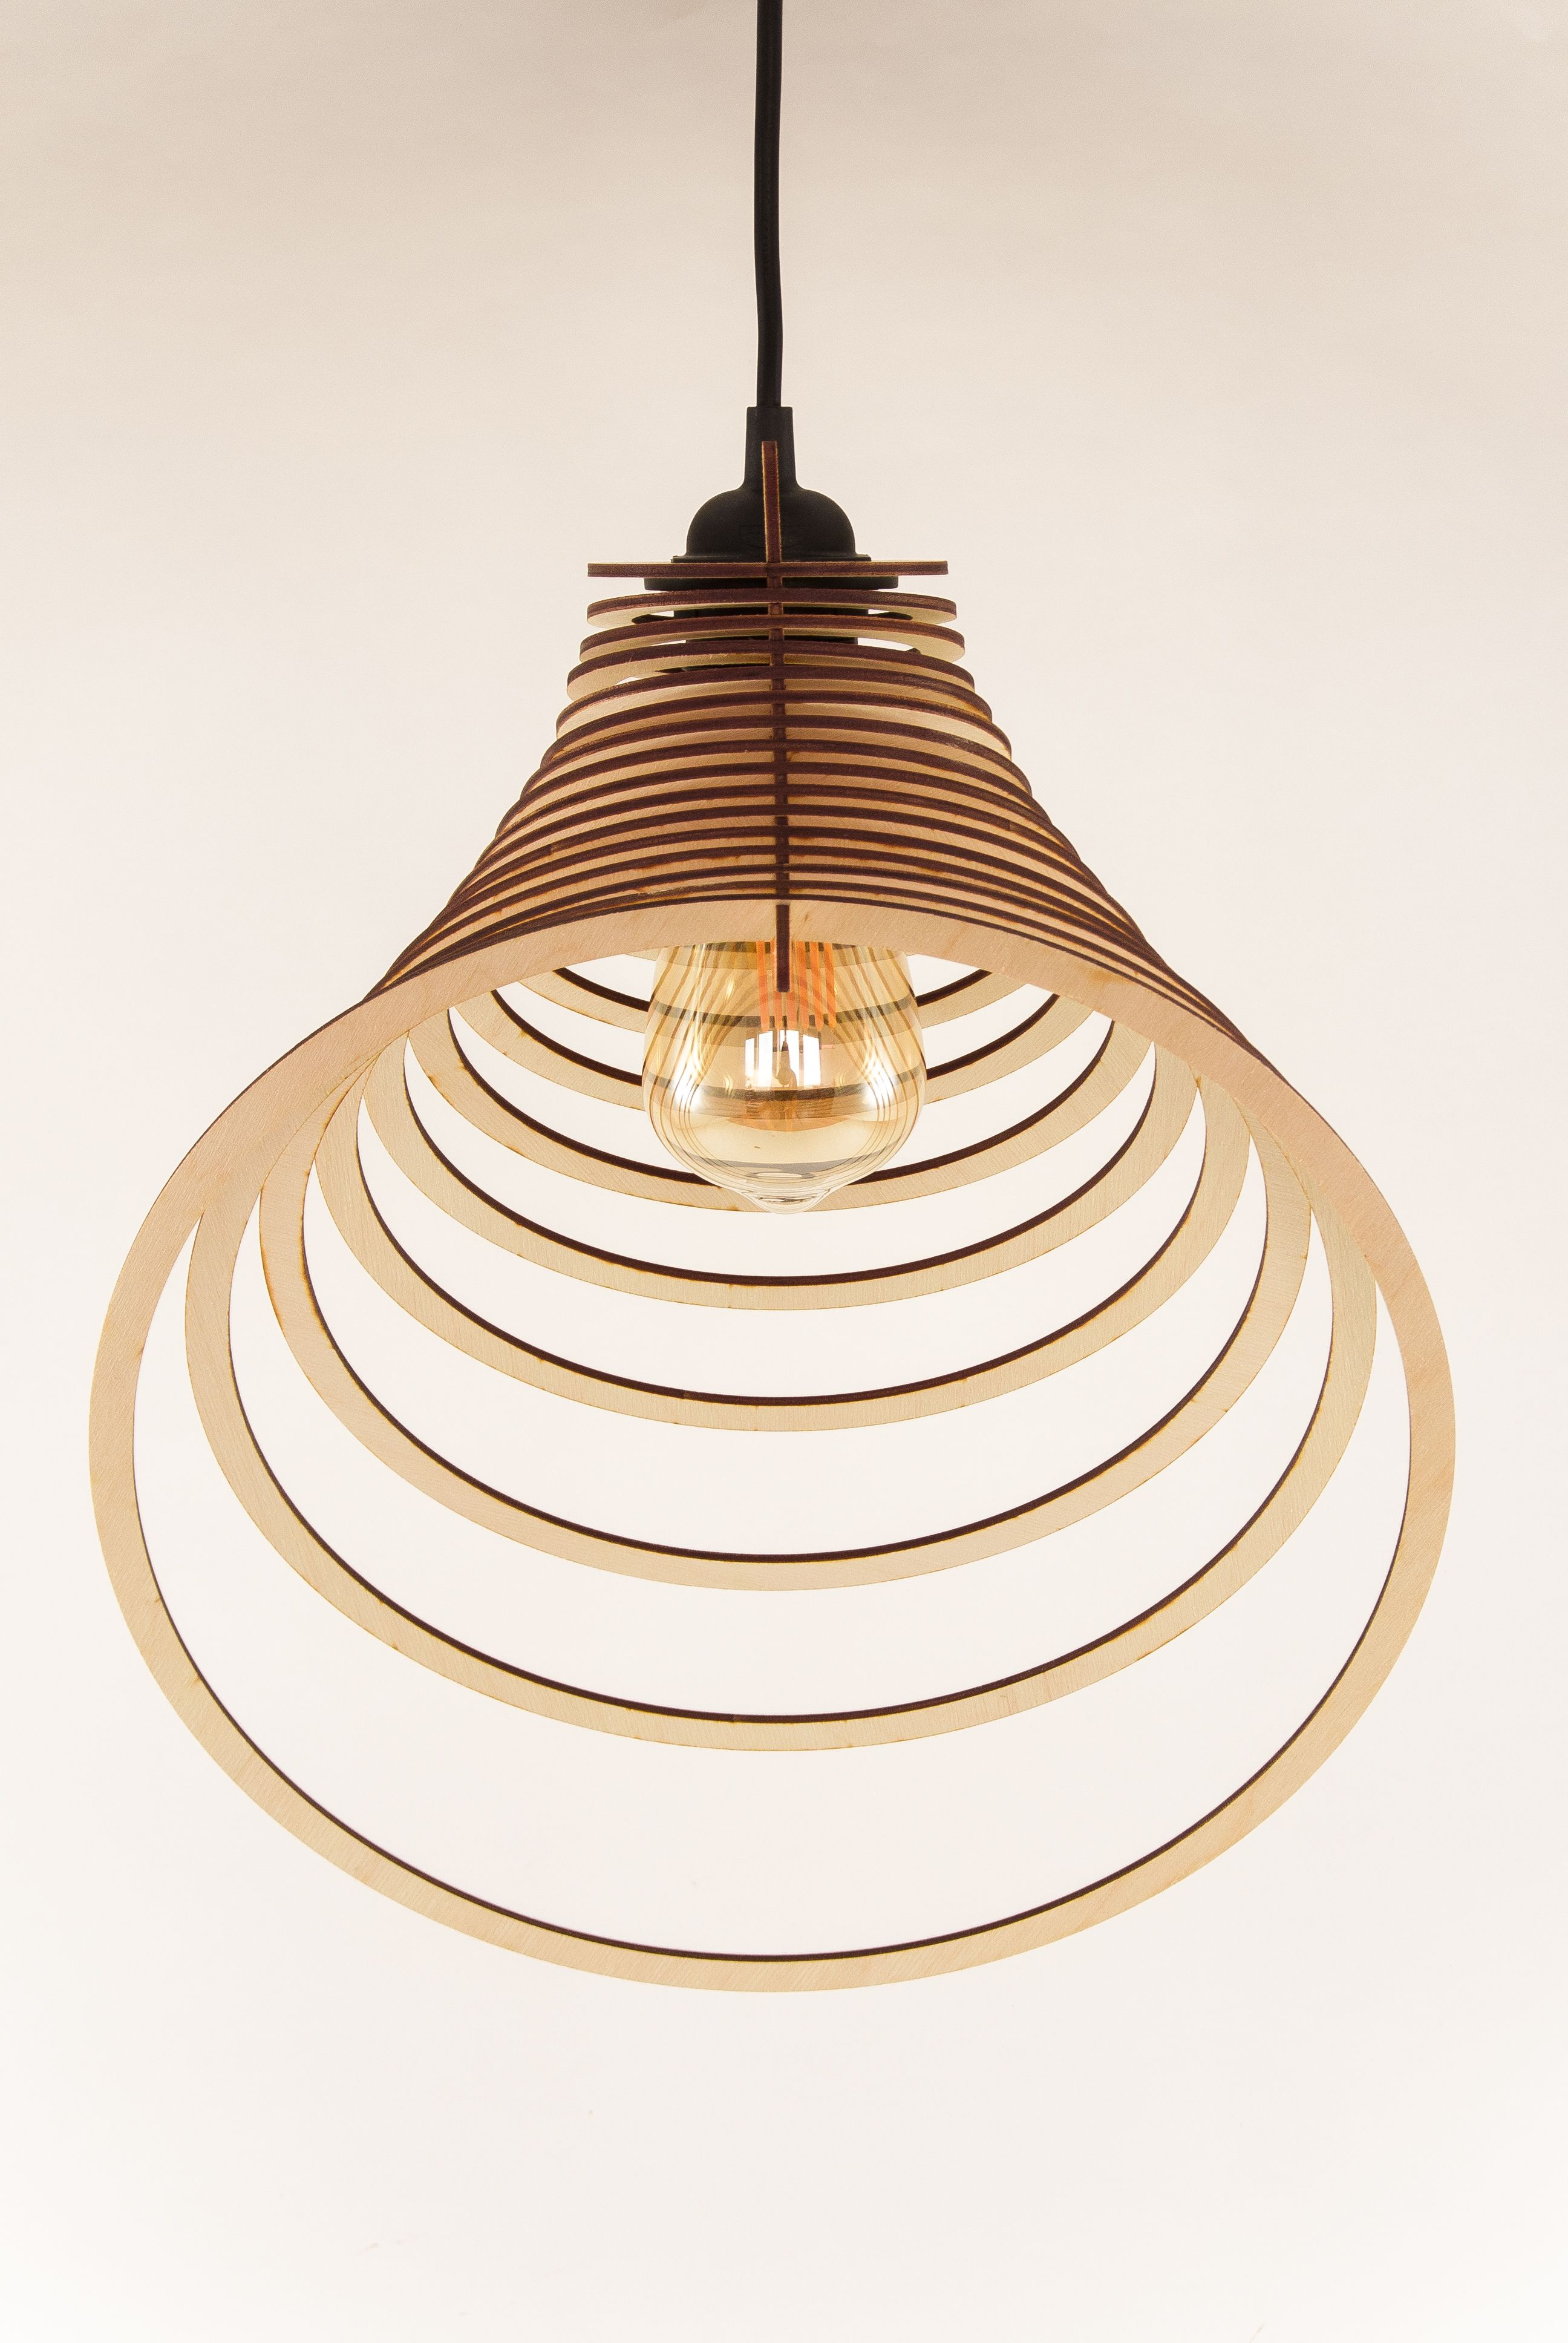 This Amazing Modern Minimalist Wooden Pendant Light Is A Great